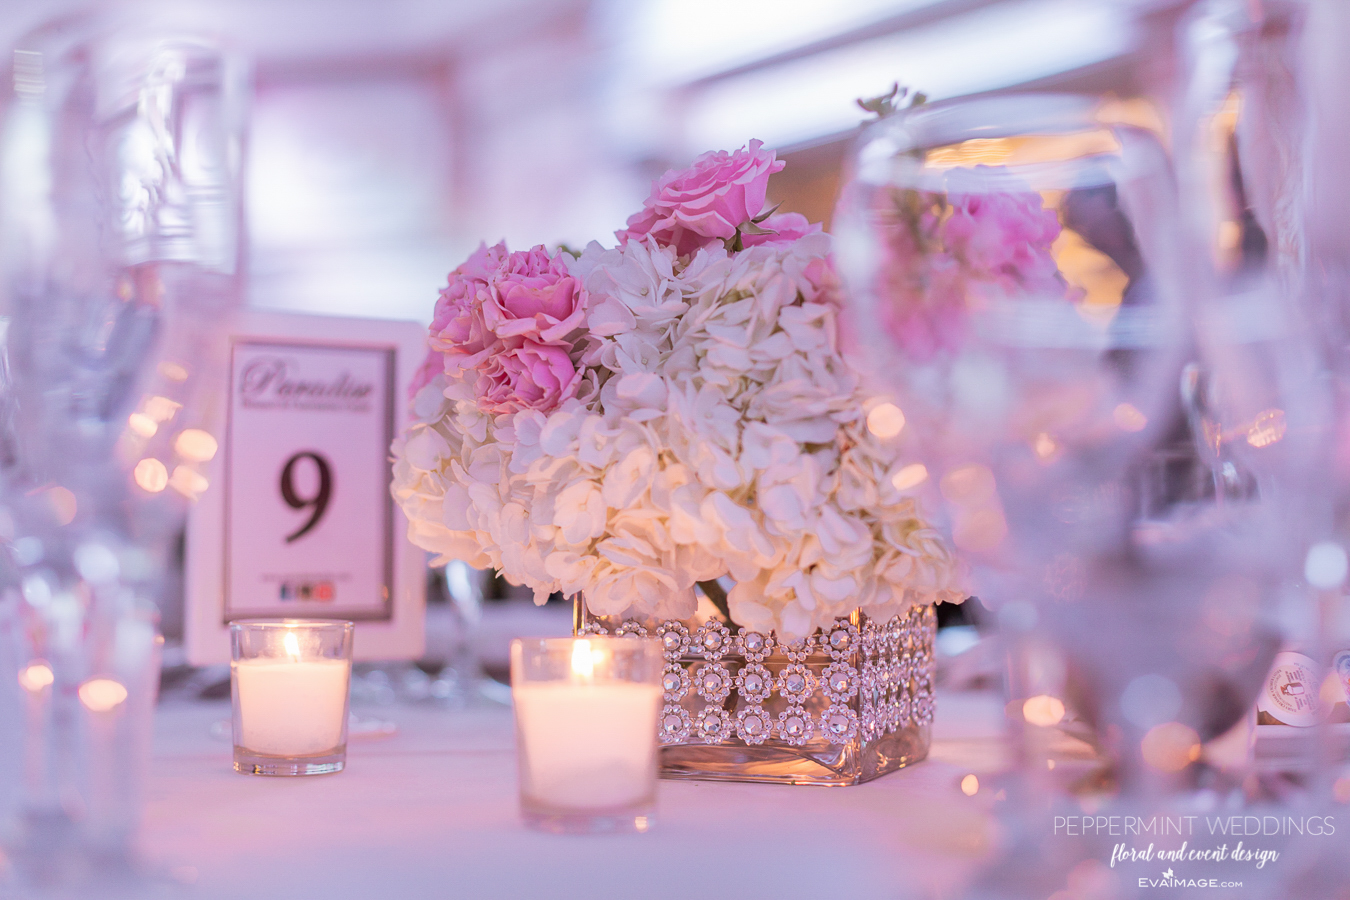 EvaImage Photography, Peppermint Weddings Floral & Event Design, Paradise Banquet & Convention Centre